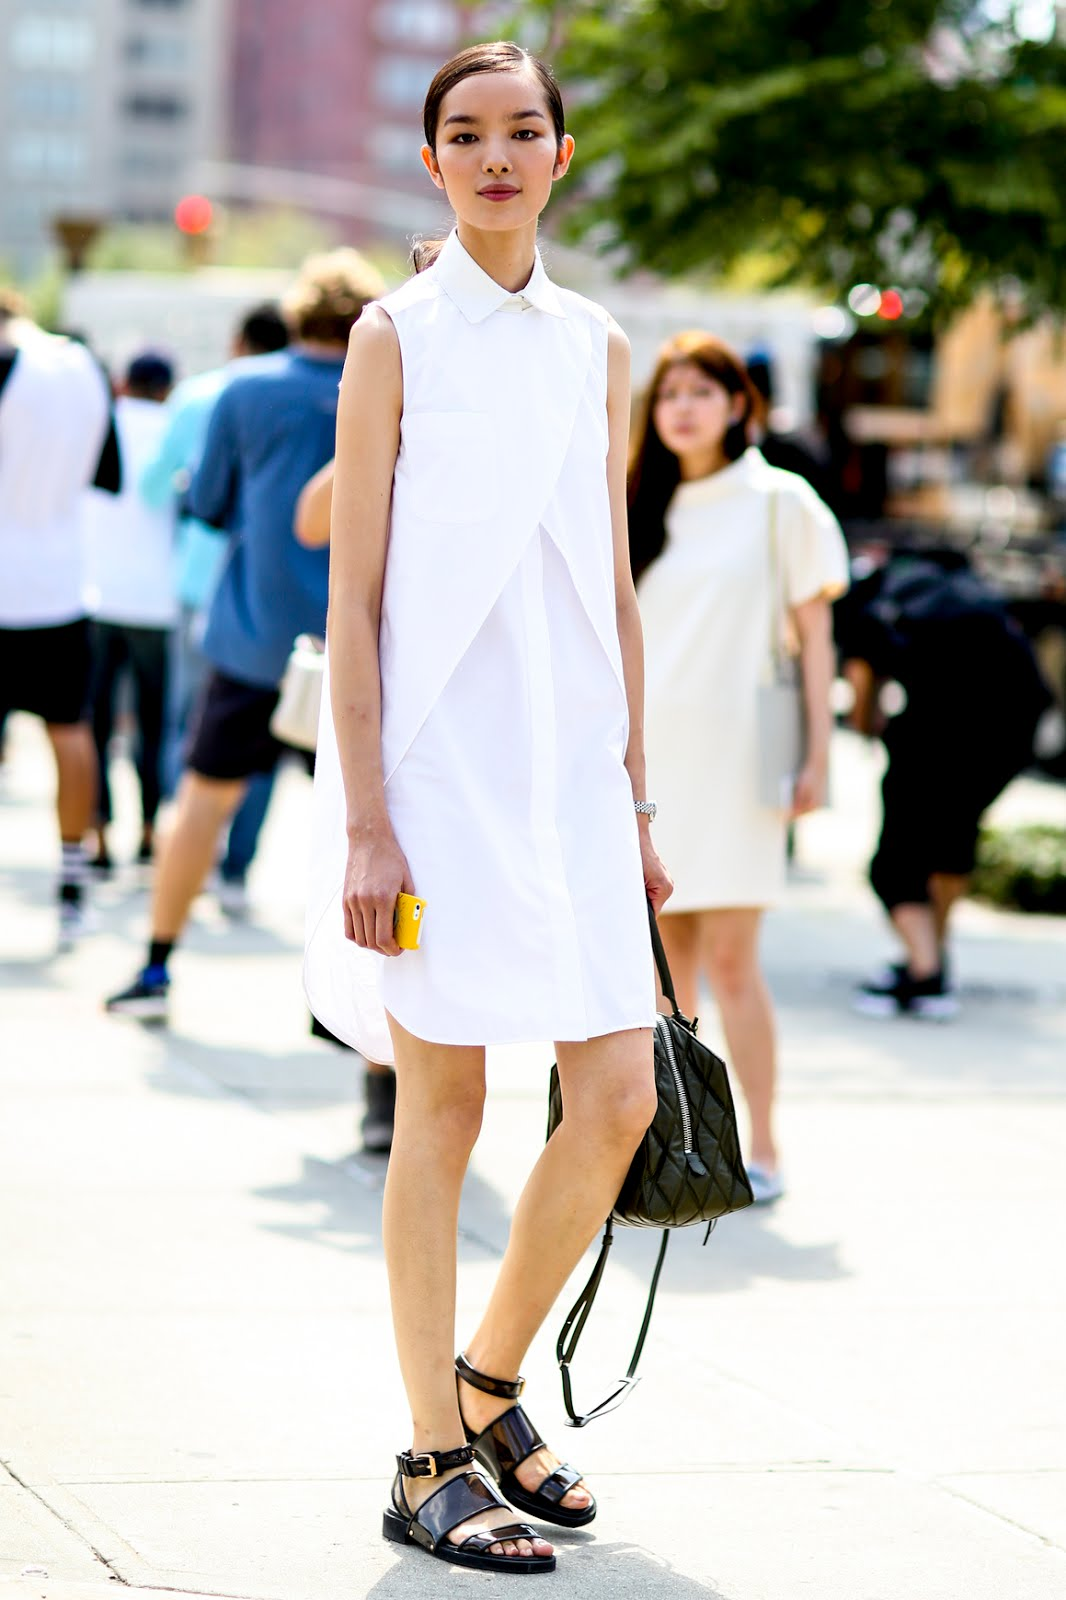 oriental model off duty look fashion blogger white shirt dress chic ootd outfit